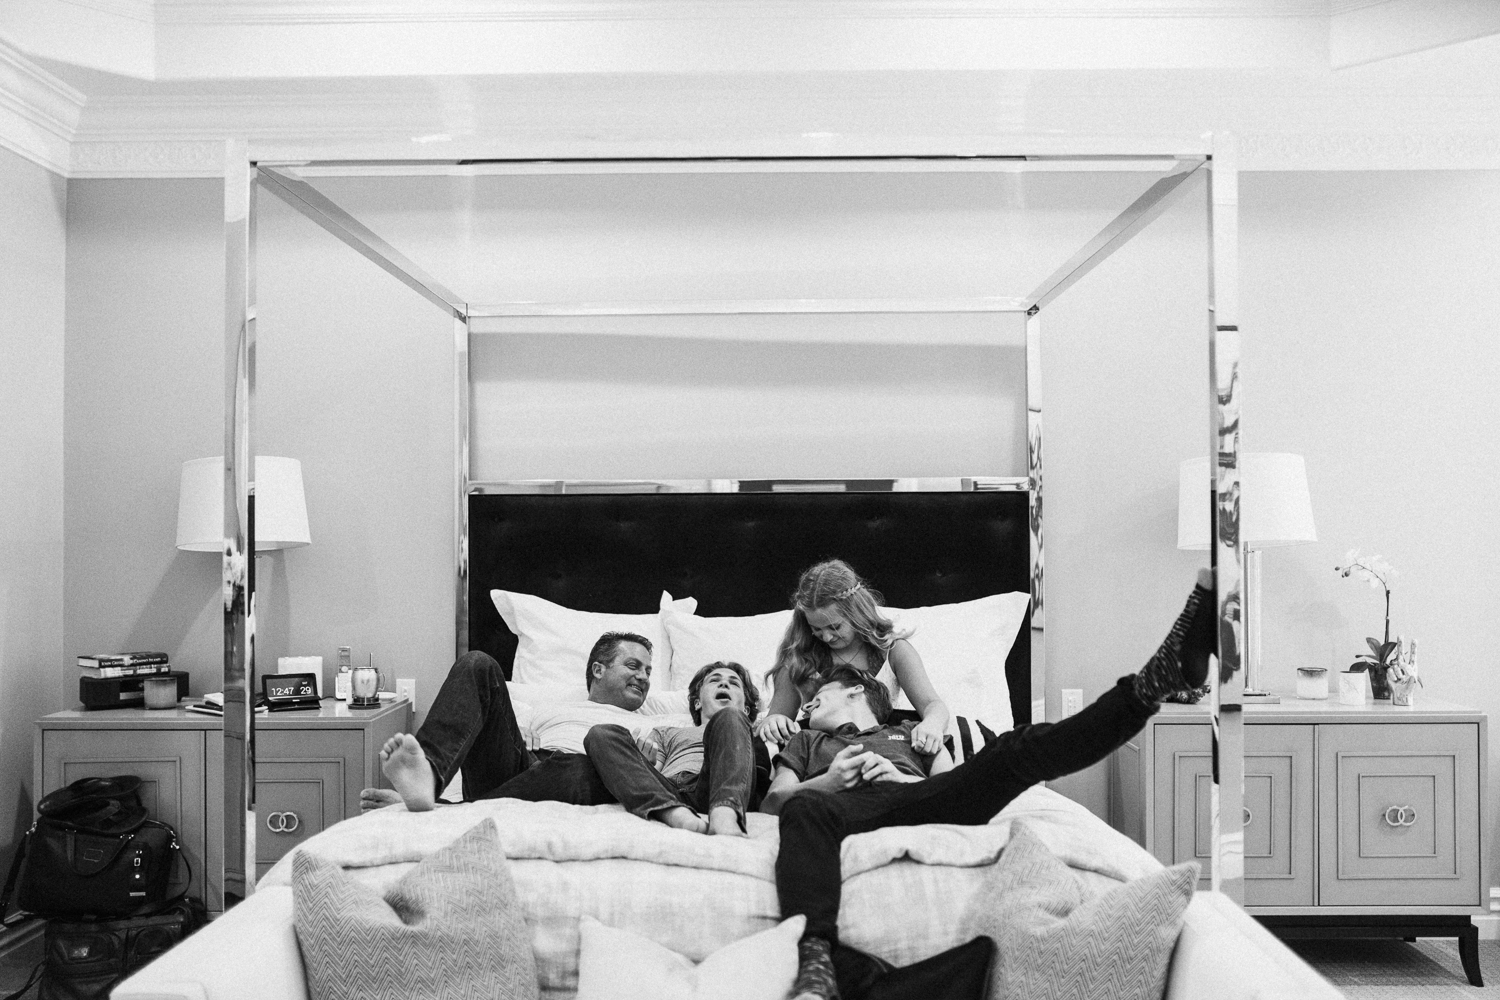 candid-black-and-white-photo-of-family-in-bed-during-in-home-session-with-jen-fairchild-photography-saltlakecity-ut